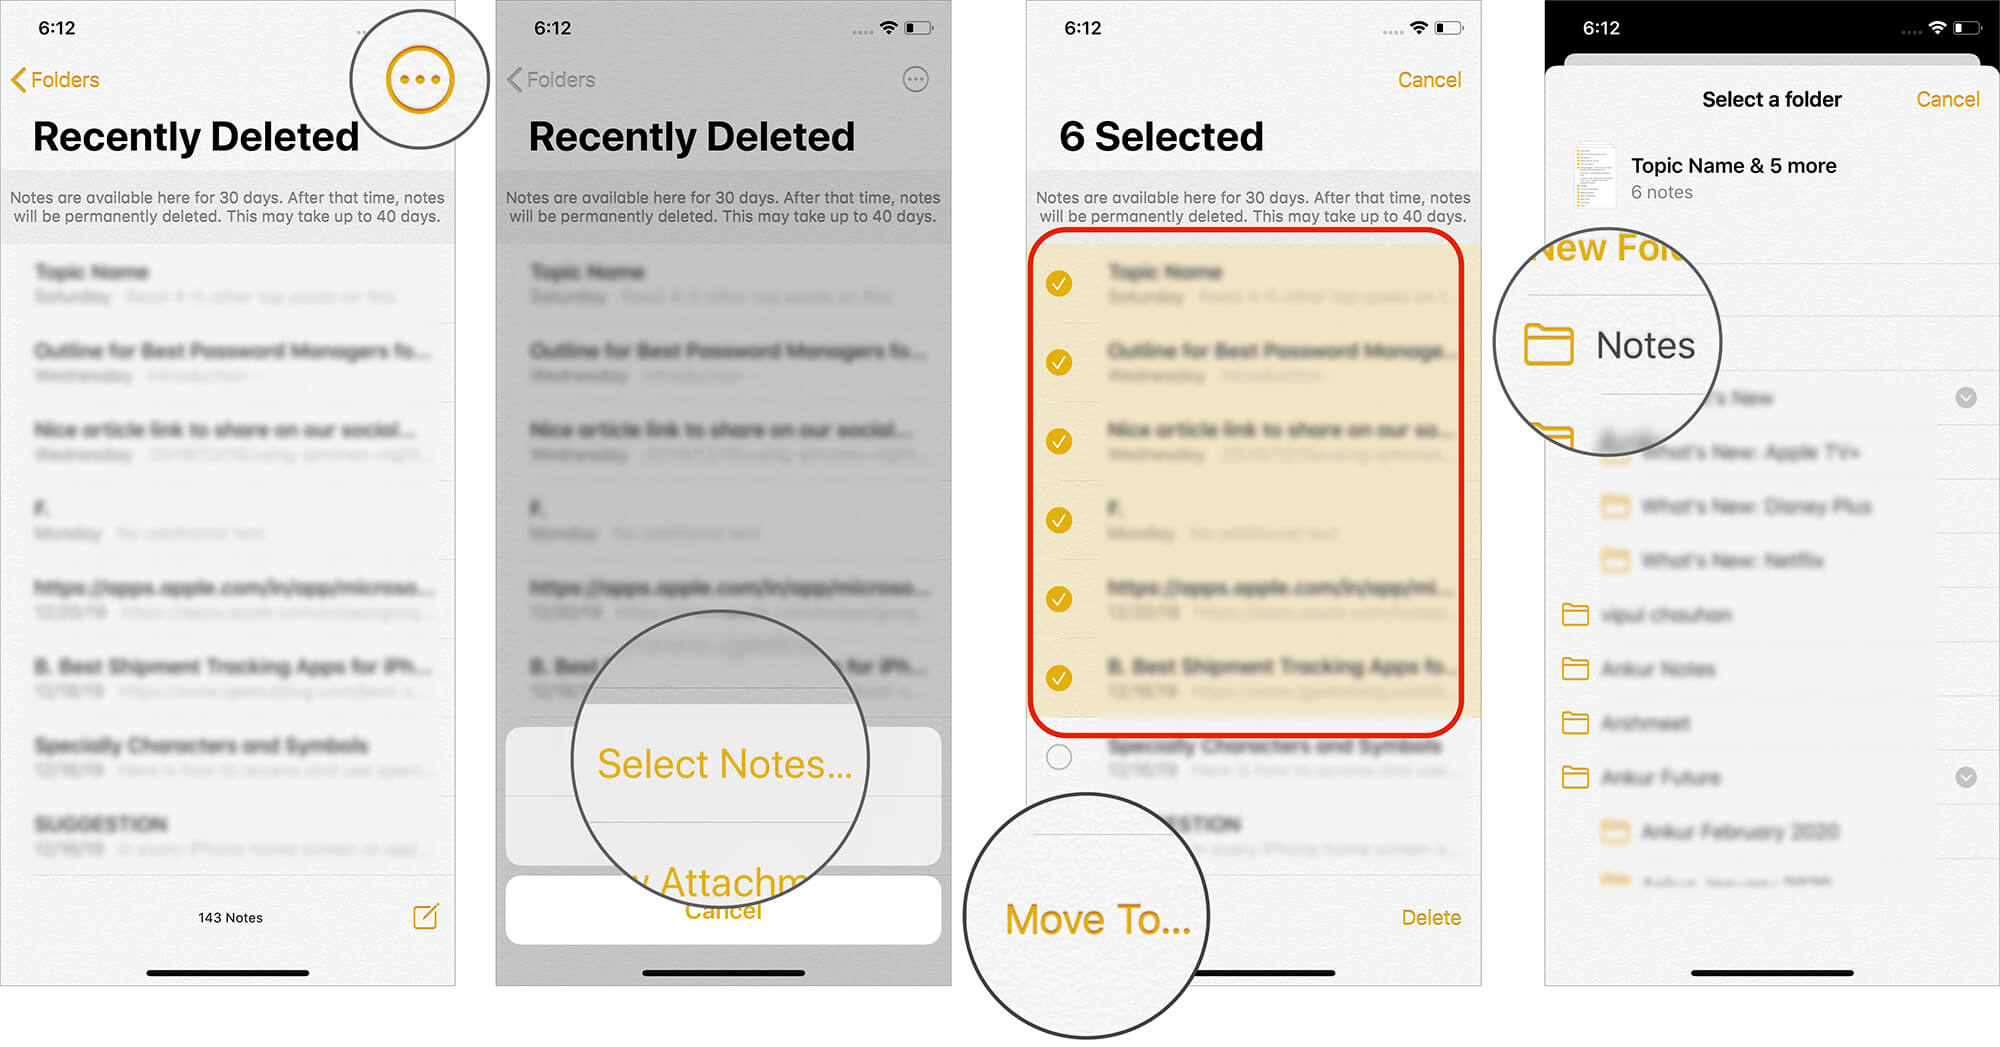 Tap on Select Notes to Restore Multiple Notes on iPhone